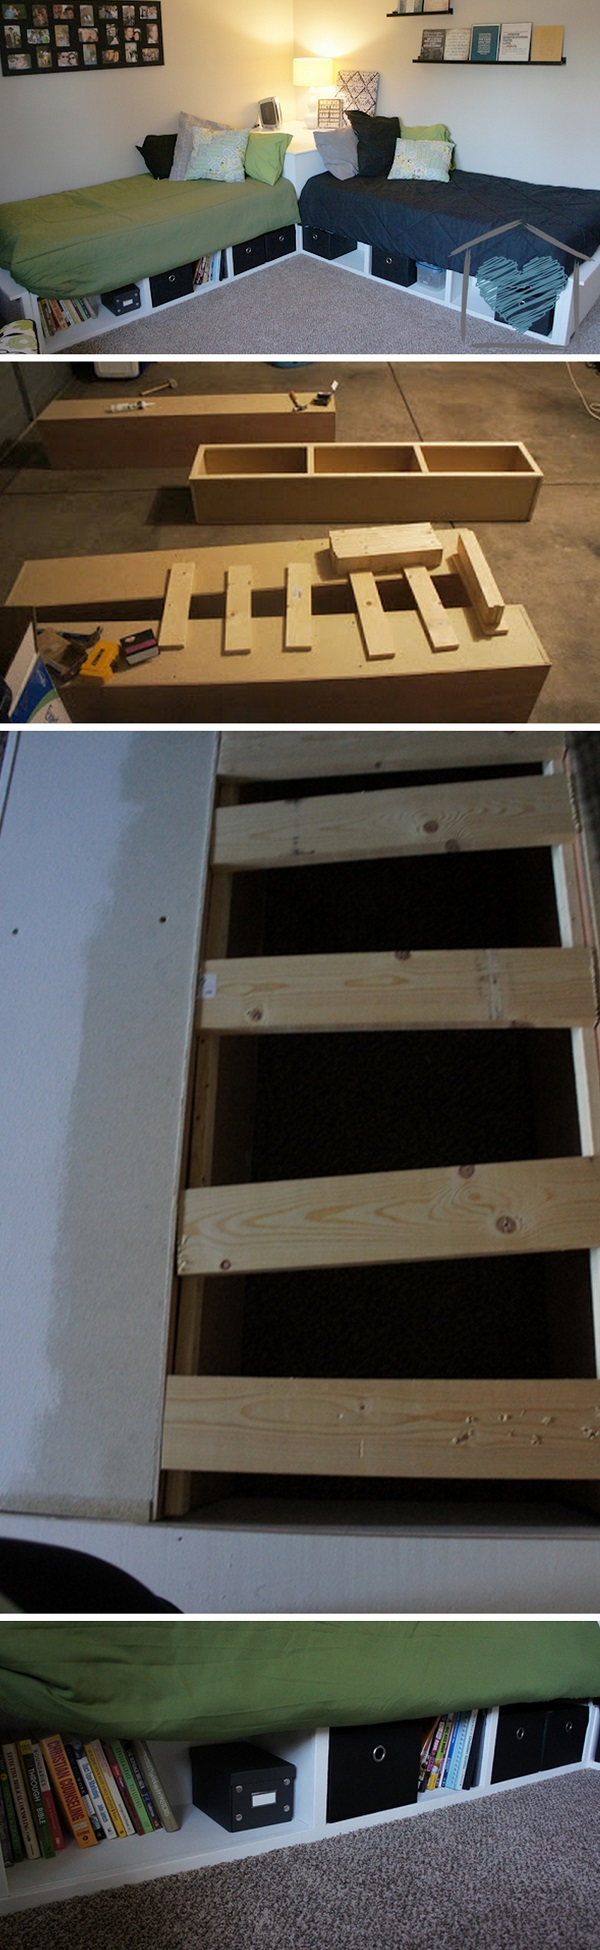 Check out the tutorial how to build a DIY corner storage bed